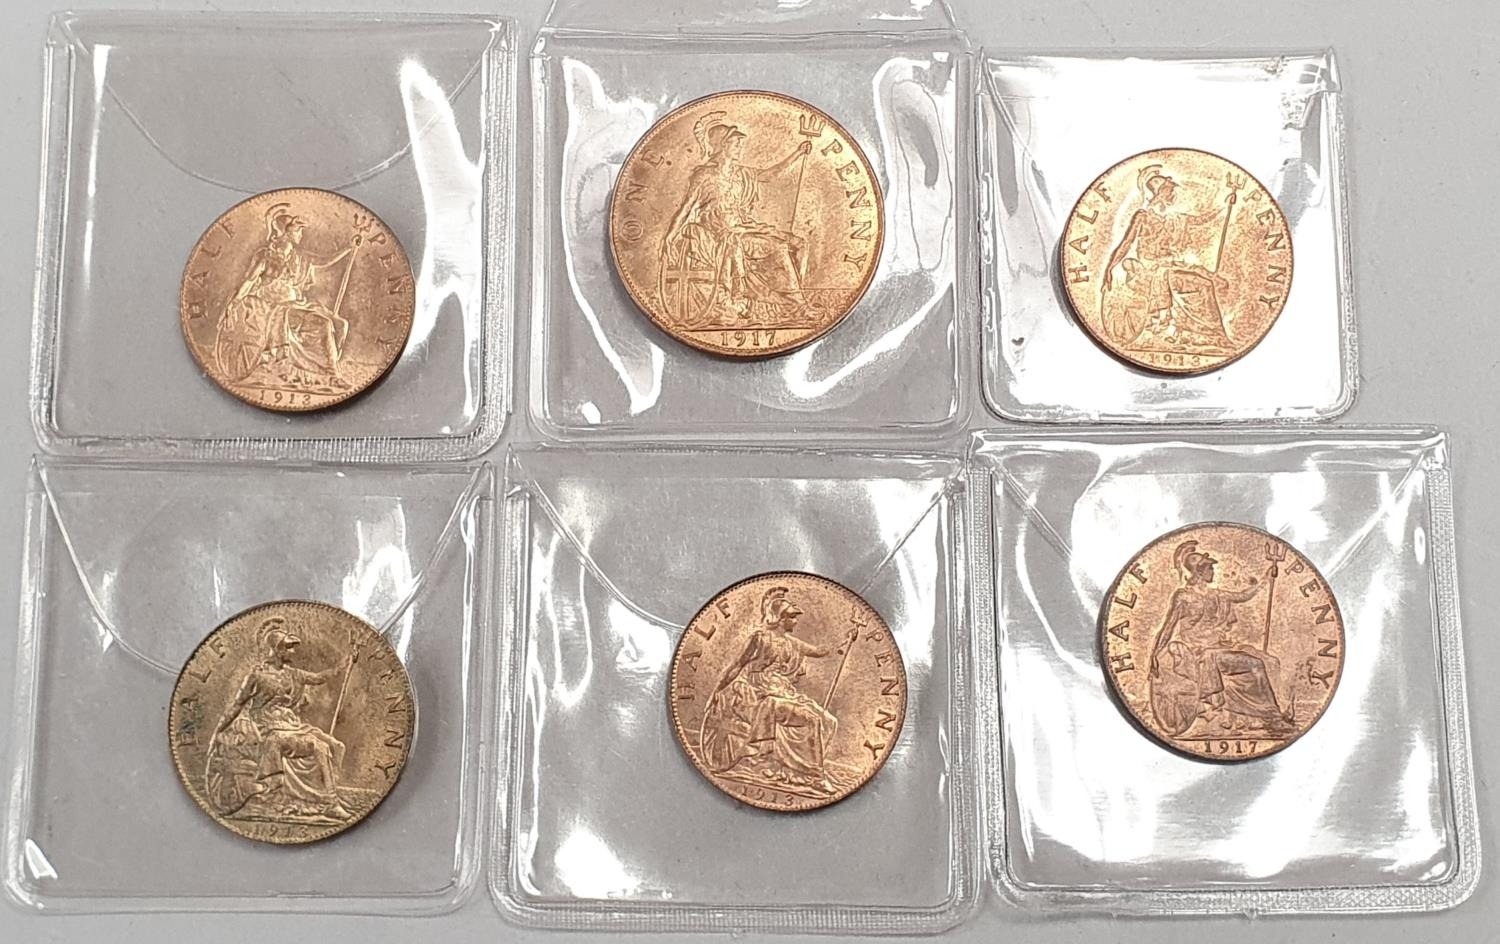 George V 1917 penny, 4 x 1913 half pennies and a 1917 half penny.